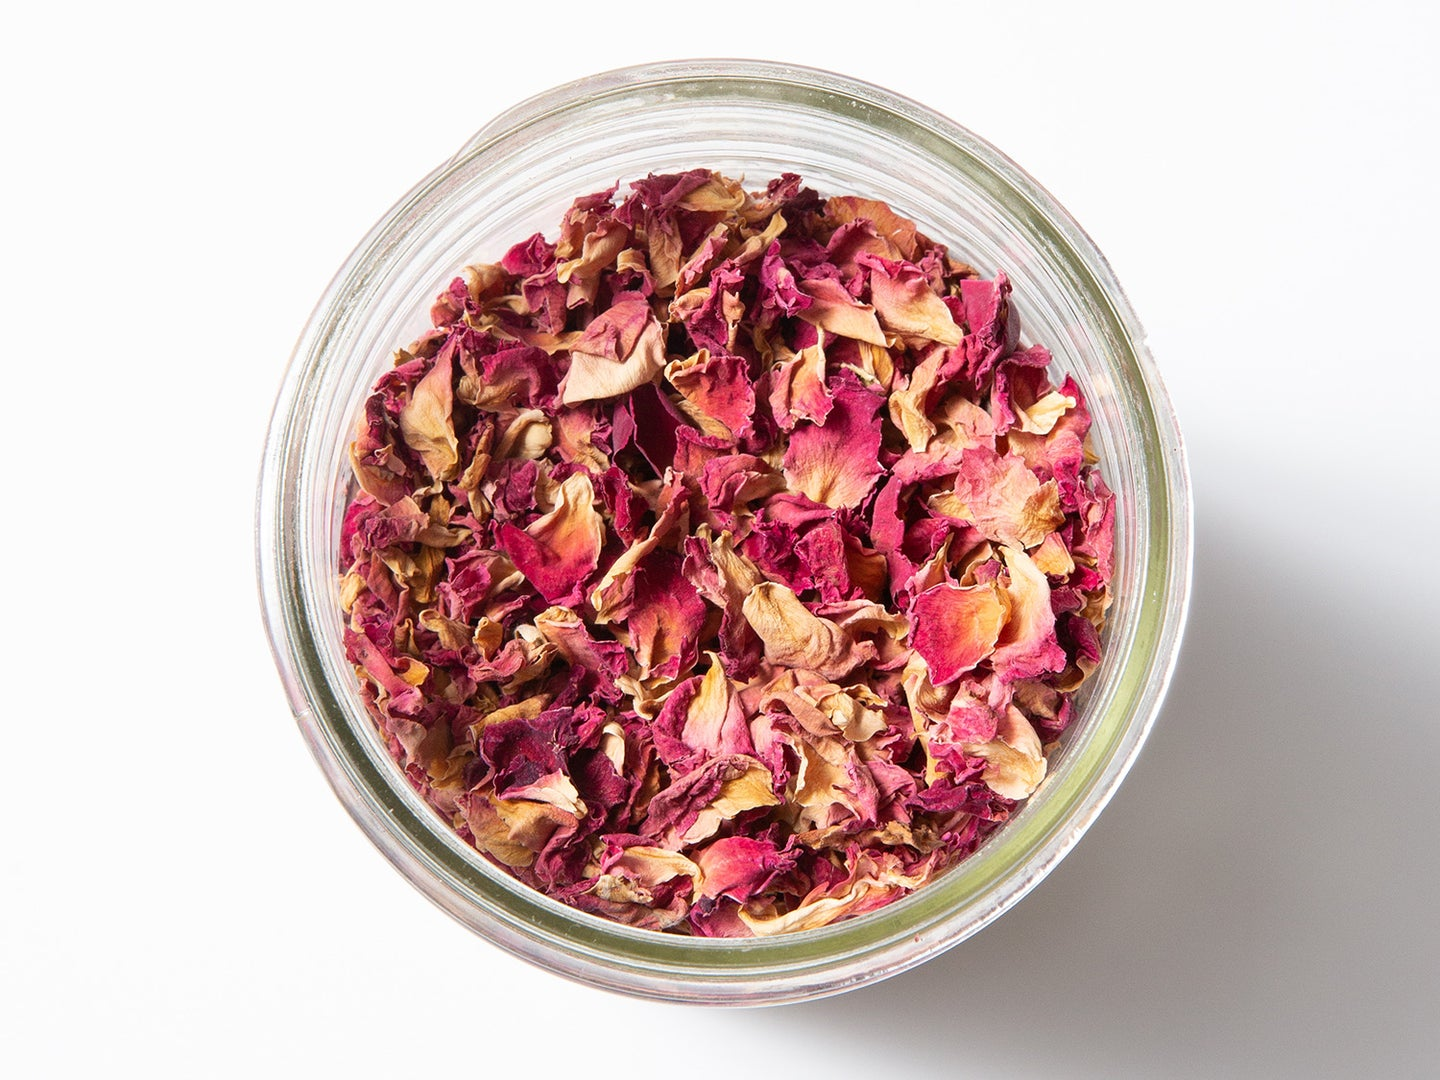 dried rose petals in a glass bowl